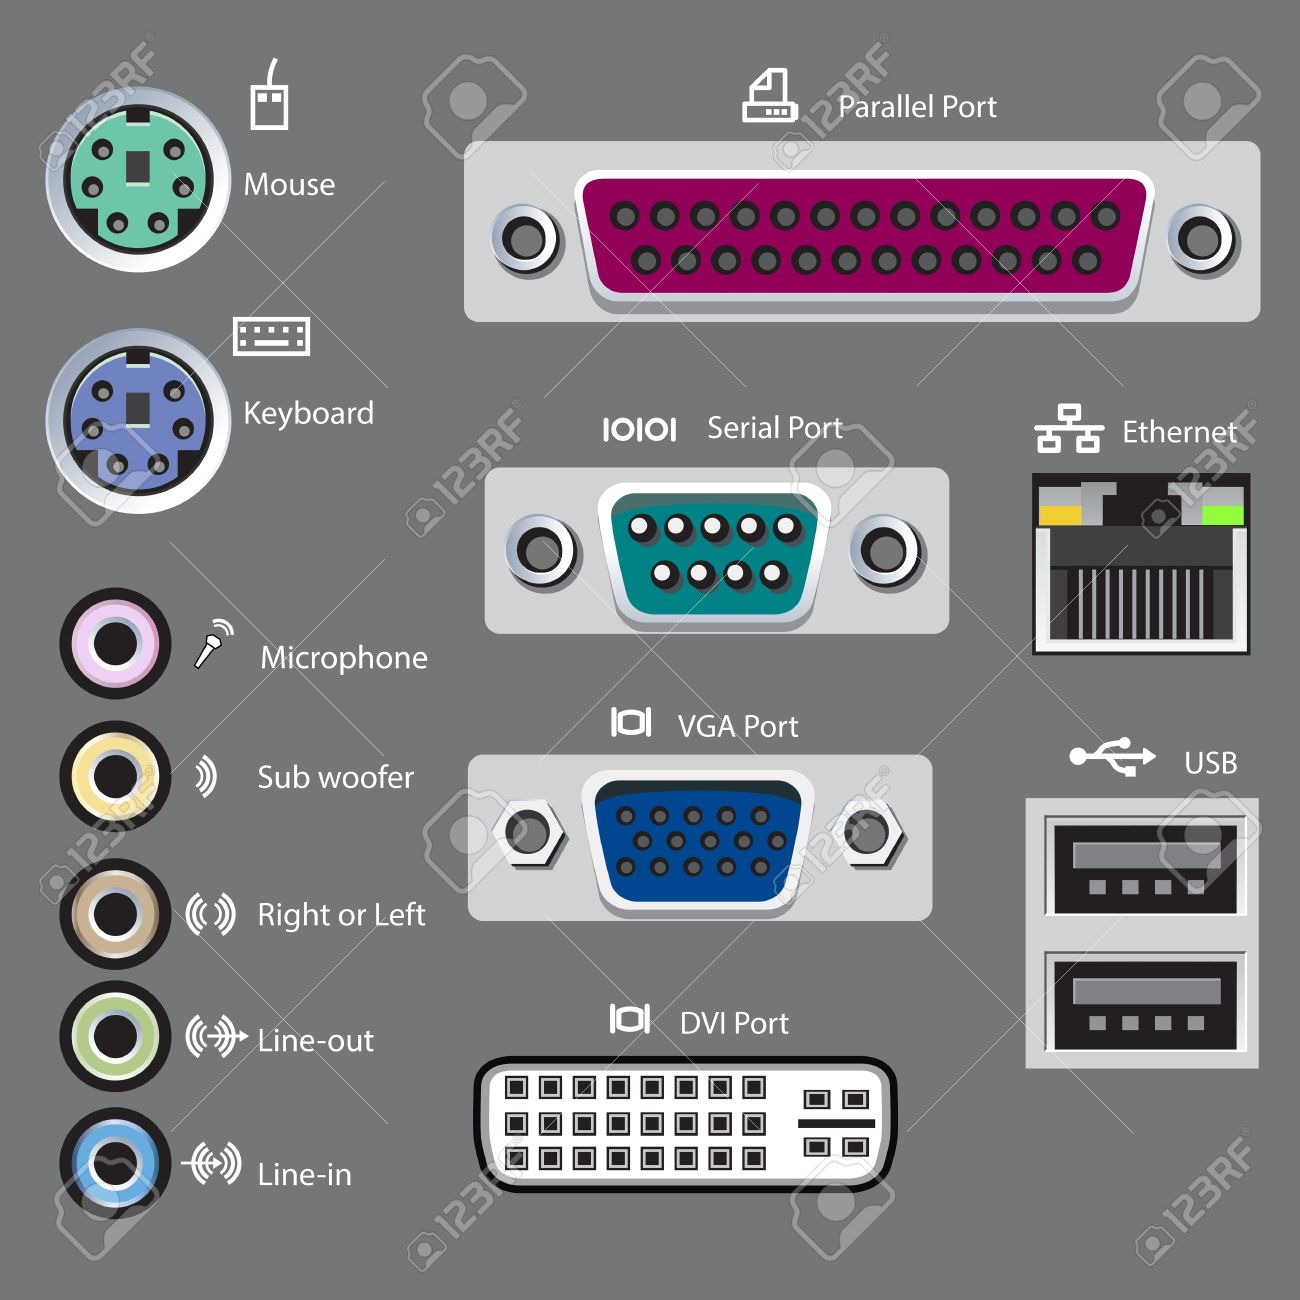 211 Serial Port Stock Vector Illustration And Royalty Free Serial.